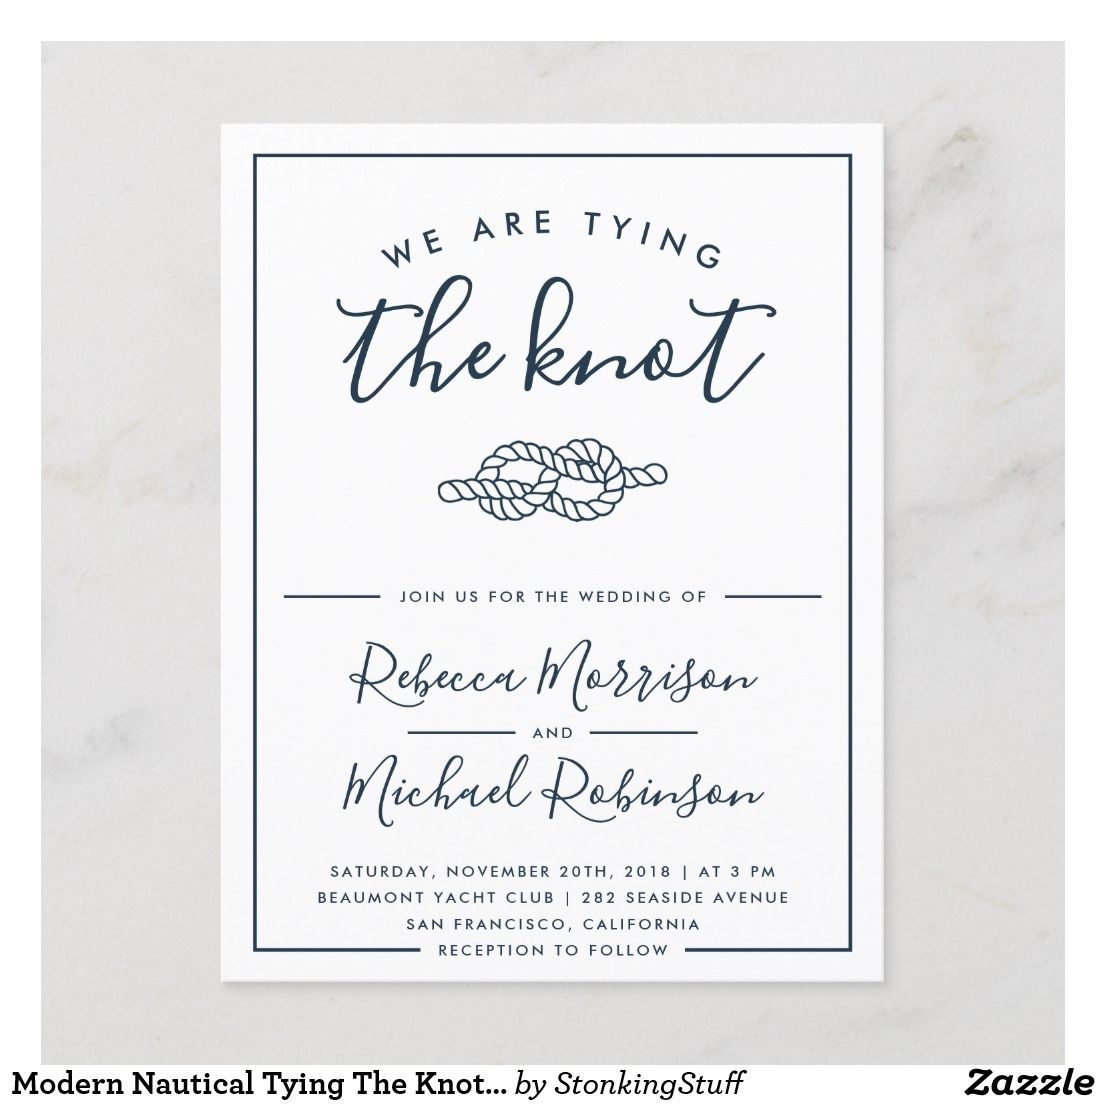 Modern Nautical Tying The Knot Wedding Invitation Postcard Zazzle Com Postcard Wedding Invitation Nautical Wedding Invitations Tie The Knot Wedding